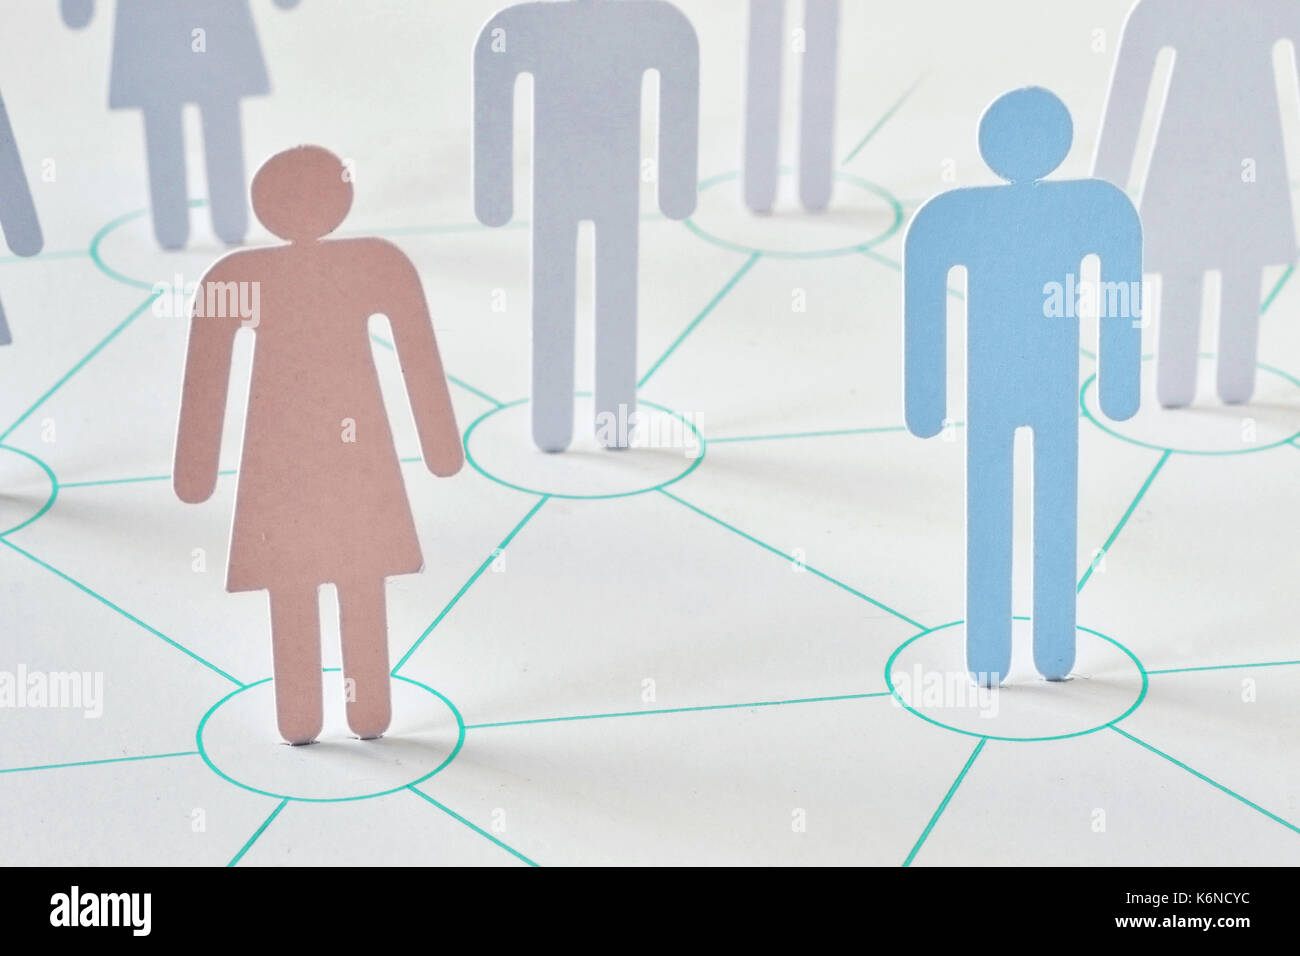 Teamwork and network concept - man and woman working together as a team - Stock Image